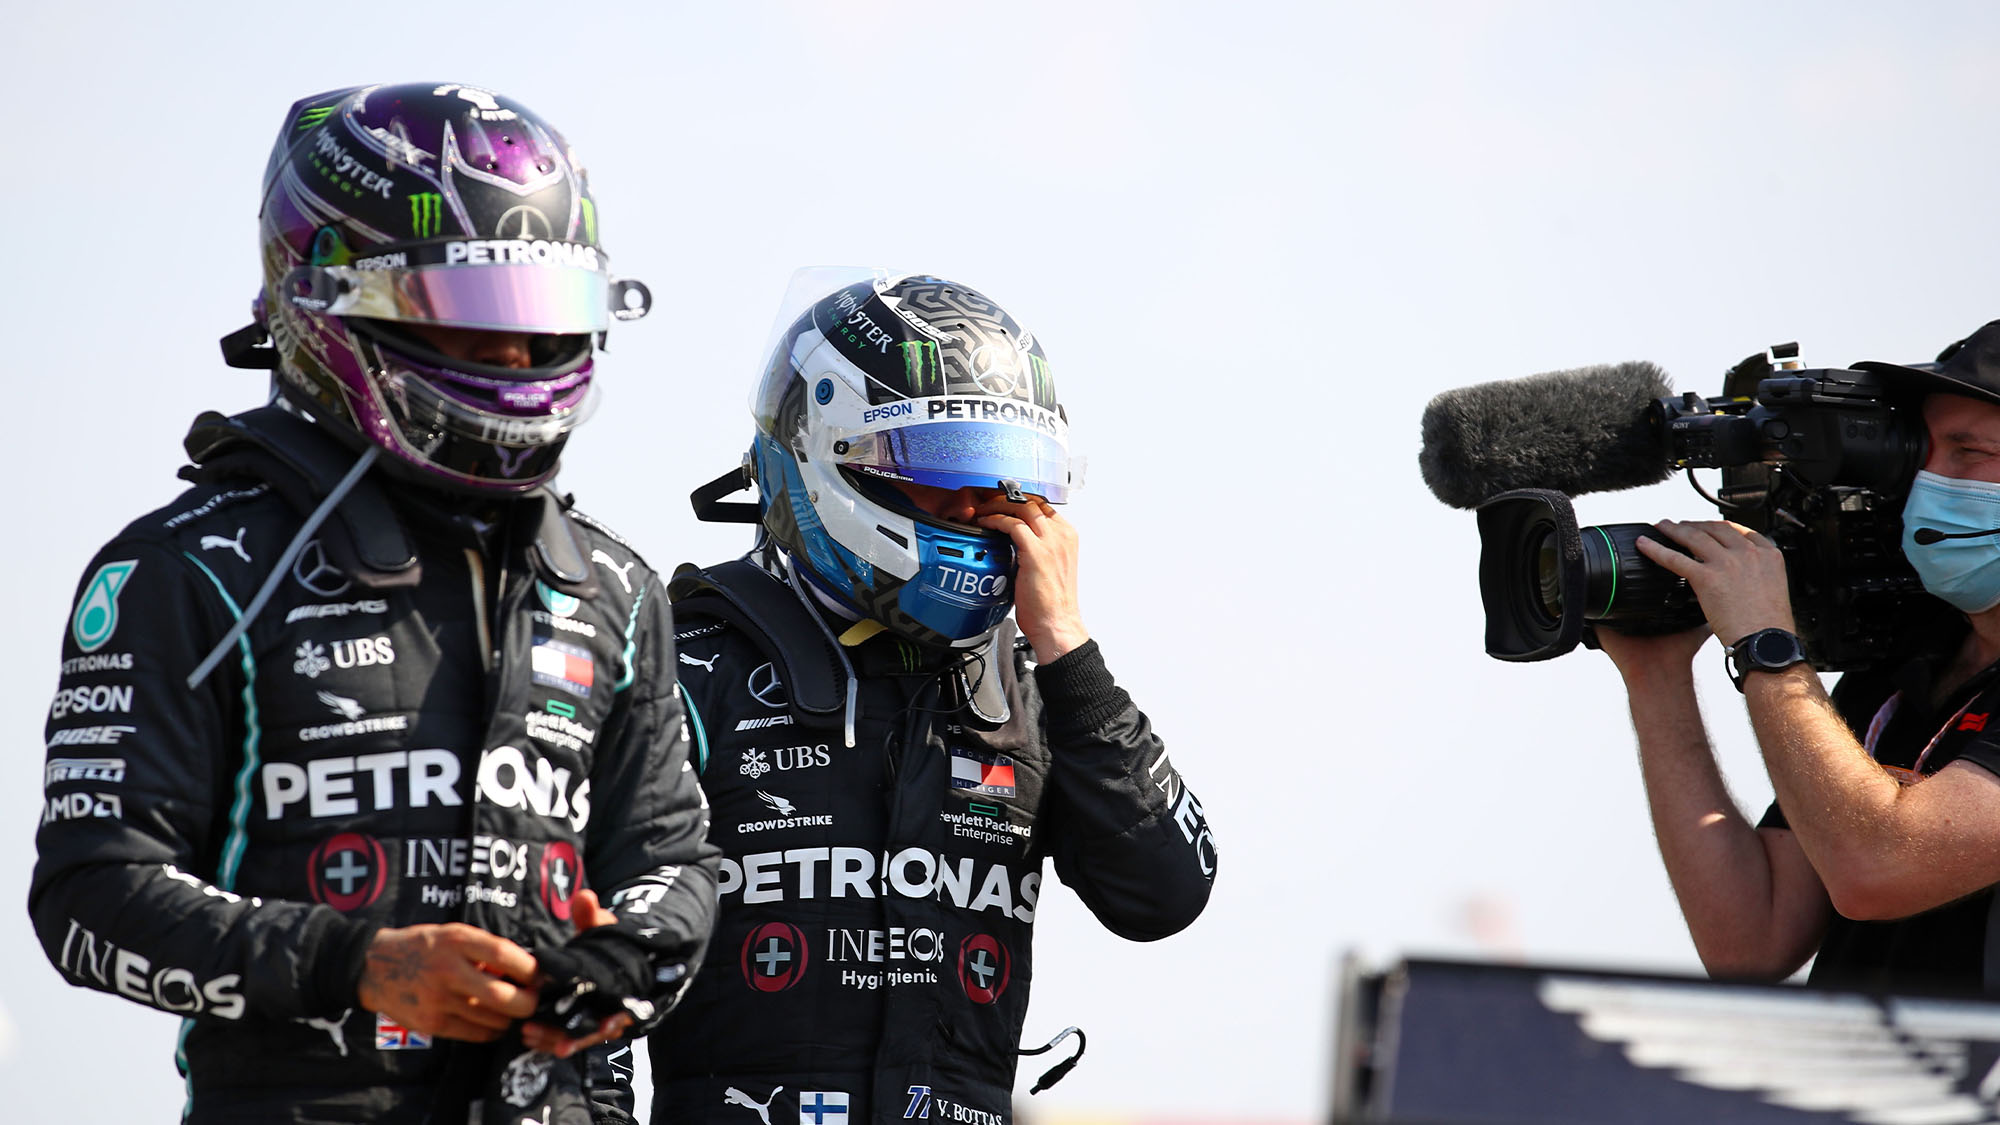 A cameraman follows Mercedes' British driver Lewis Hamilton (L) and Mercedes' Finnish driver Valtteri Bottas (C) as they walk to the podium at the end of the race during the F1 70th Anniversary Grand Prix at Silverstone on August 9, 2020 in Northampton. - The race commemorates the 70th anniversary of the inaugural world championship race, held at Silverstone in 1950. (Photo by Bryn Lennon / POOL / AFP) (Photo by BRYN LENNON/POOL/AFP via Getty Images)